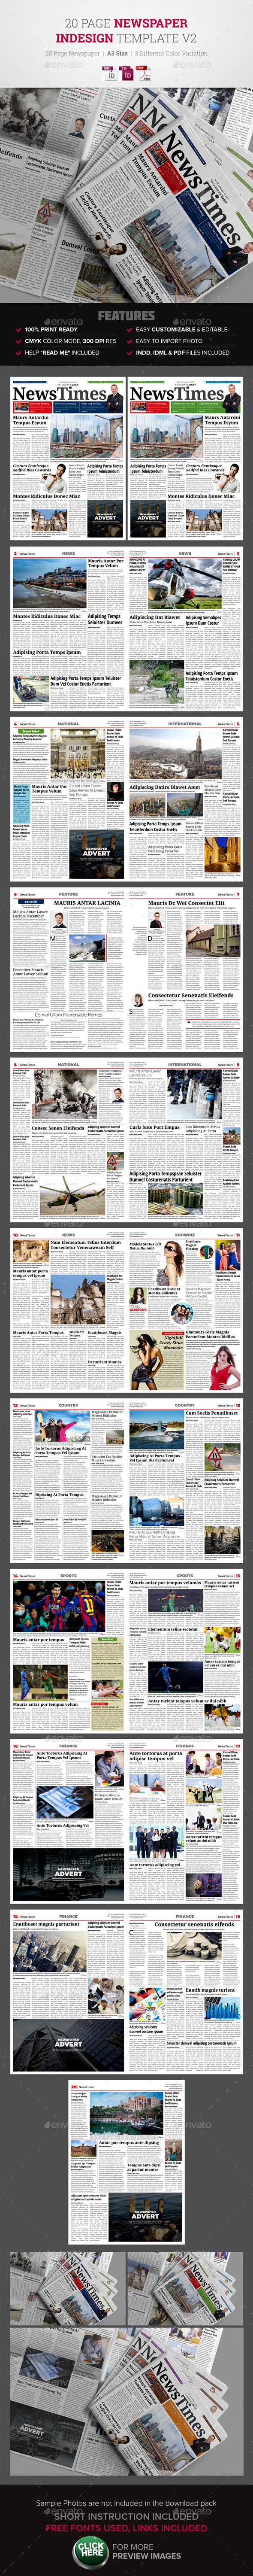 20 Page Newspaper Indesign V2